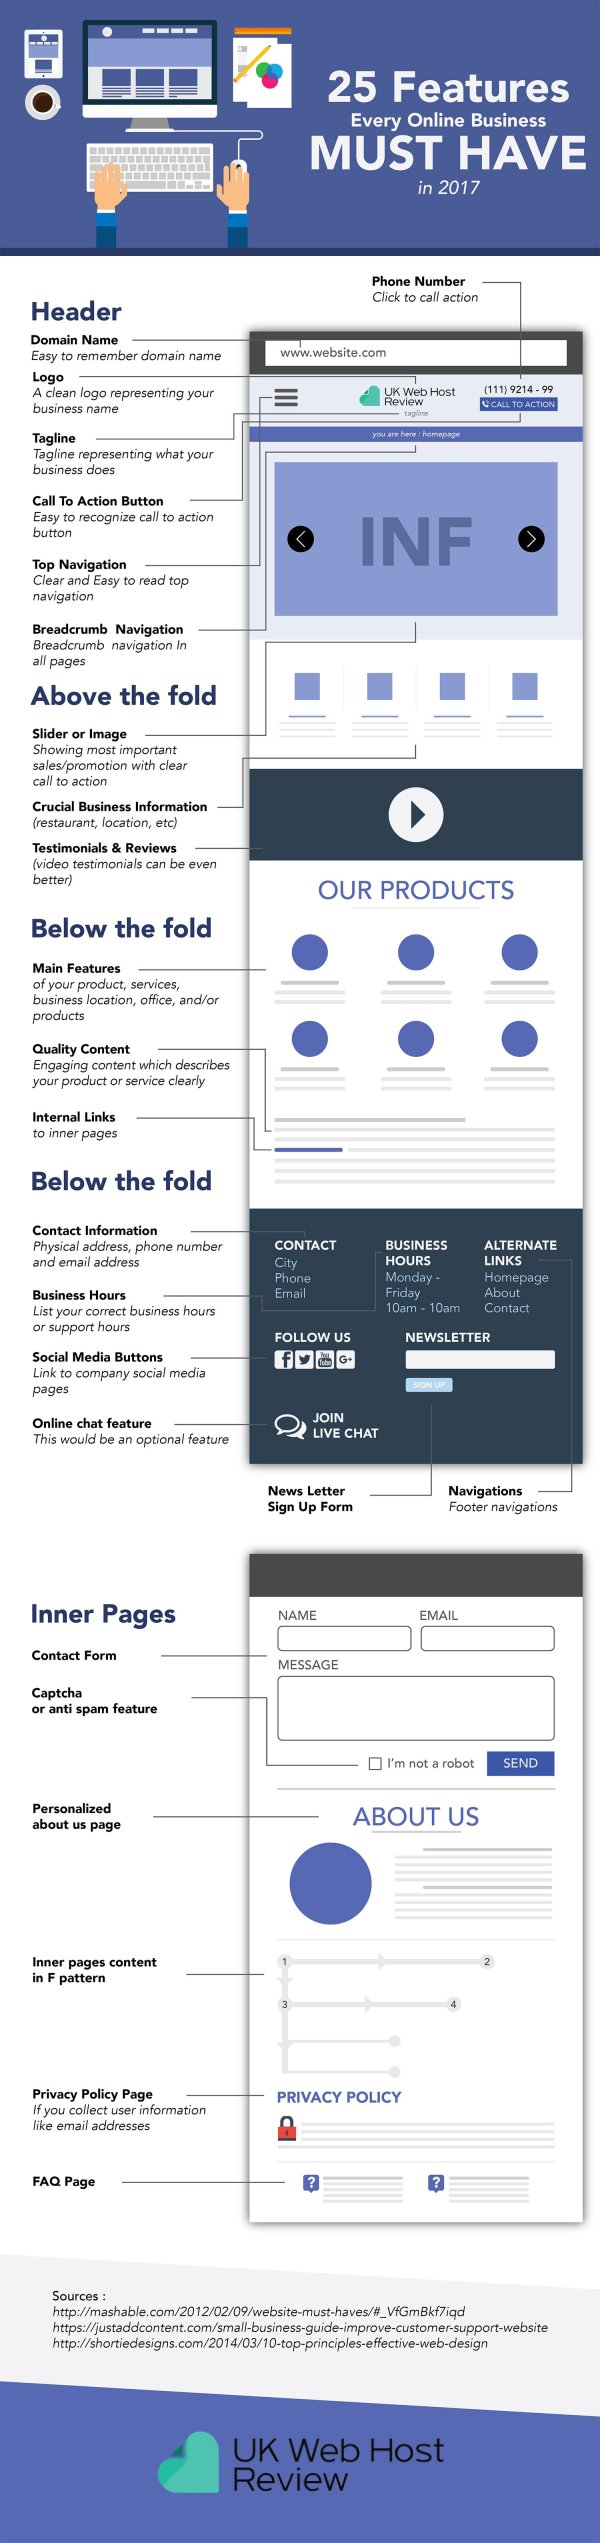 25-Features-Every-Online-Business-Must-Have-in-2017-infographic-lkrllc